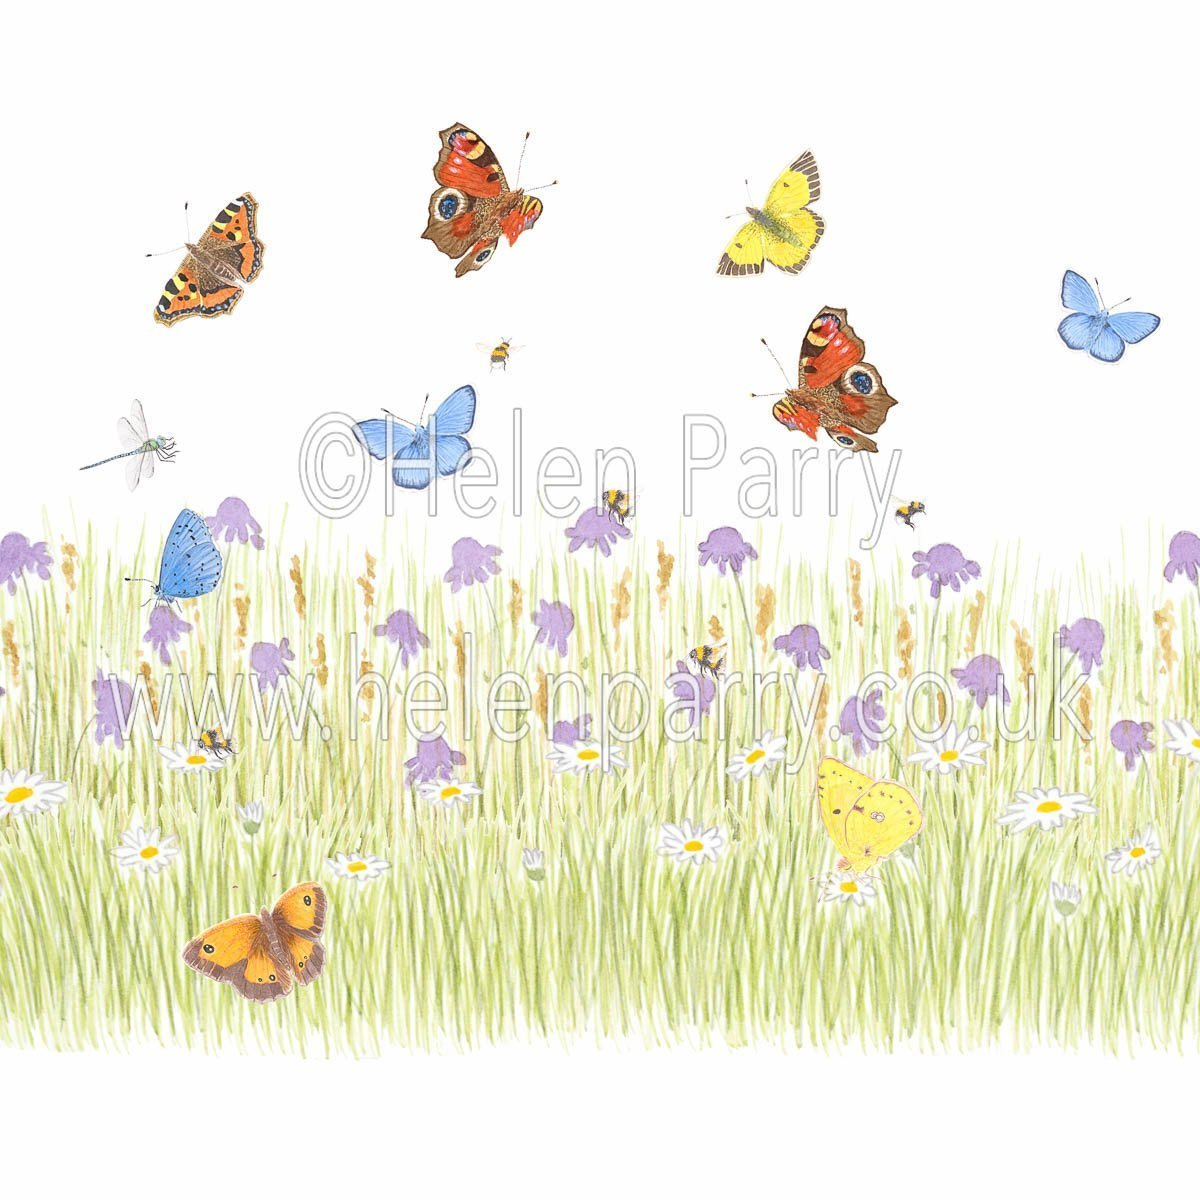 greeting card spring meadow with daises and field scabious, dragonfly, butterflies, bees